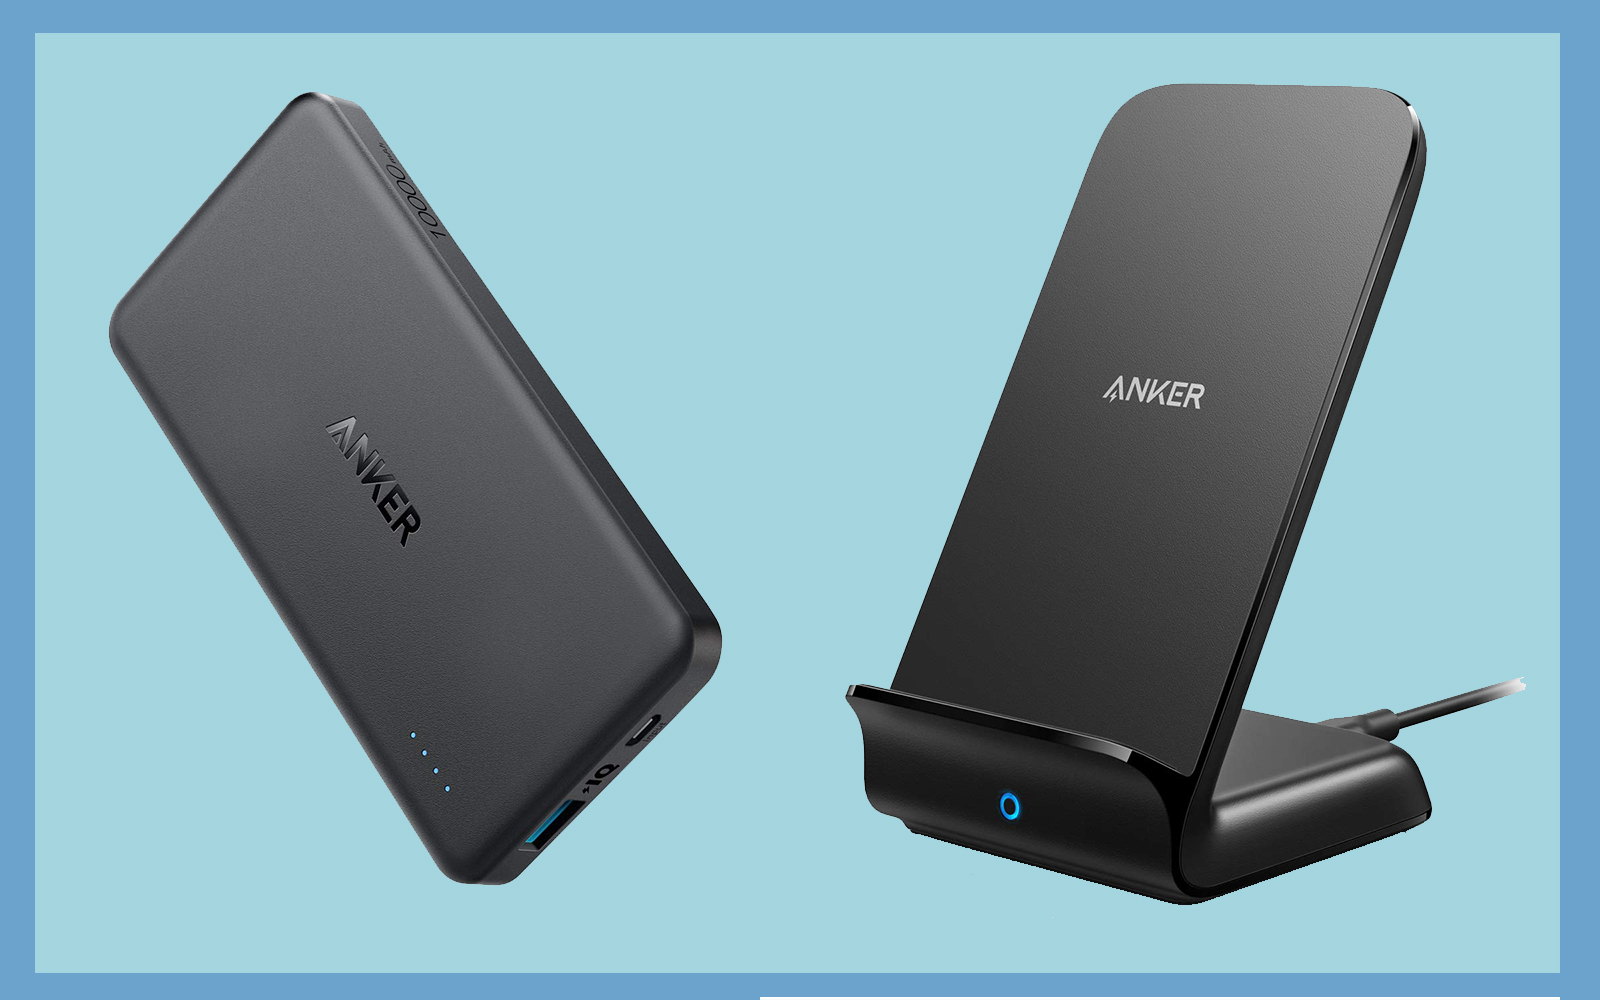 ANKER Wireless Chargers